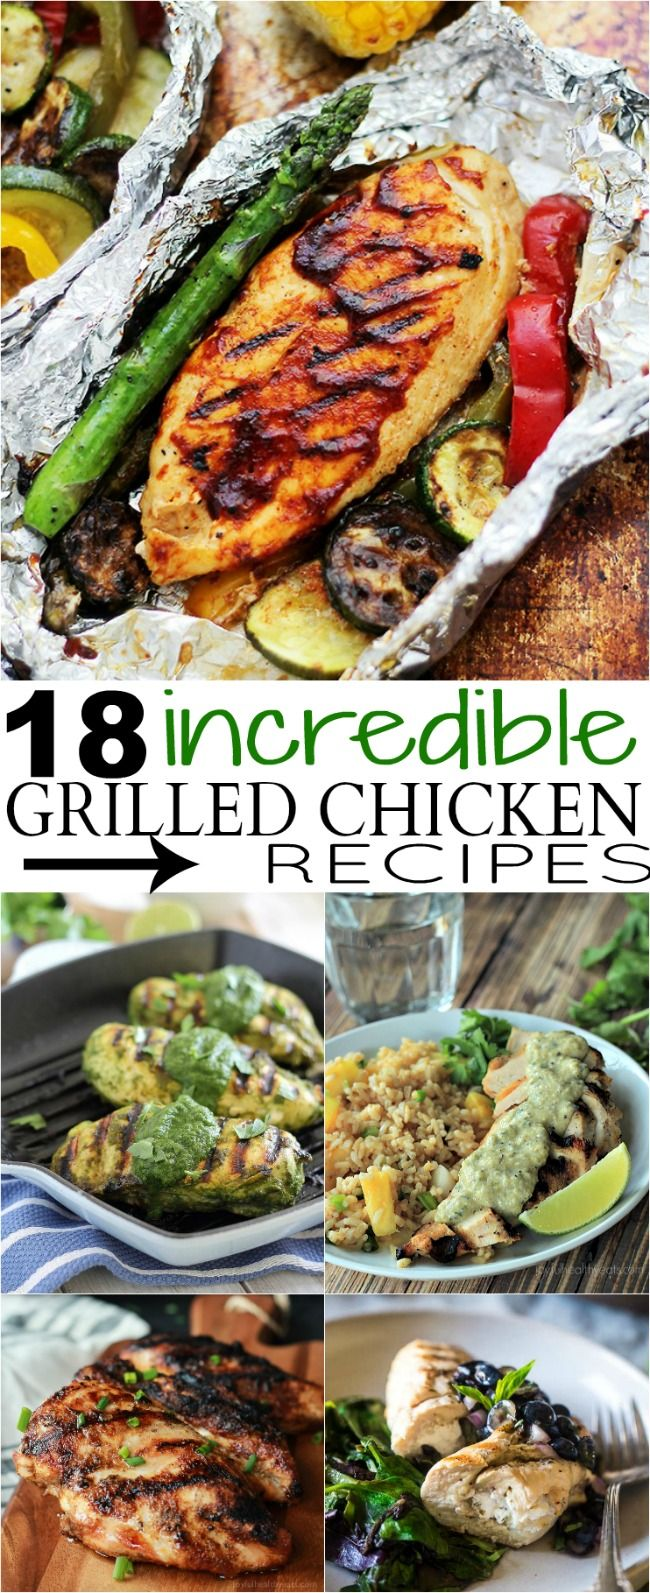 18 Wow-Worthy Grilled Chicken Recipes you need to make this Summer!